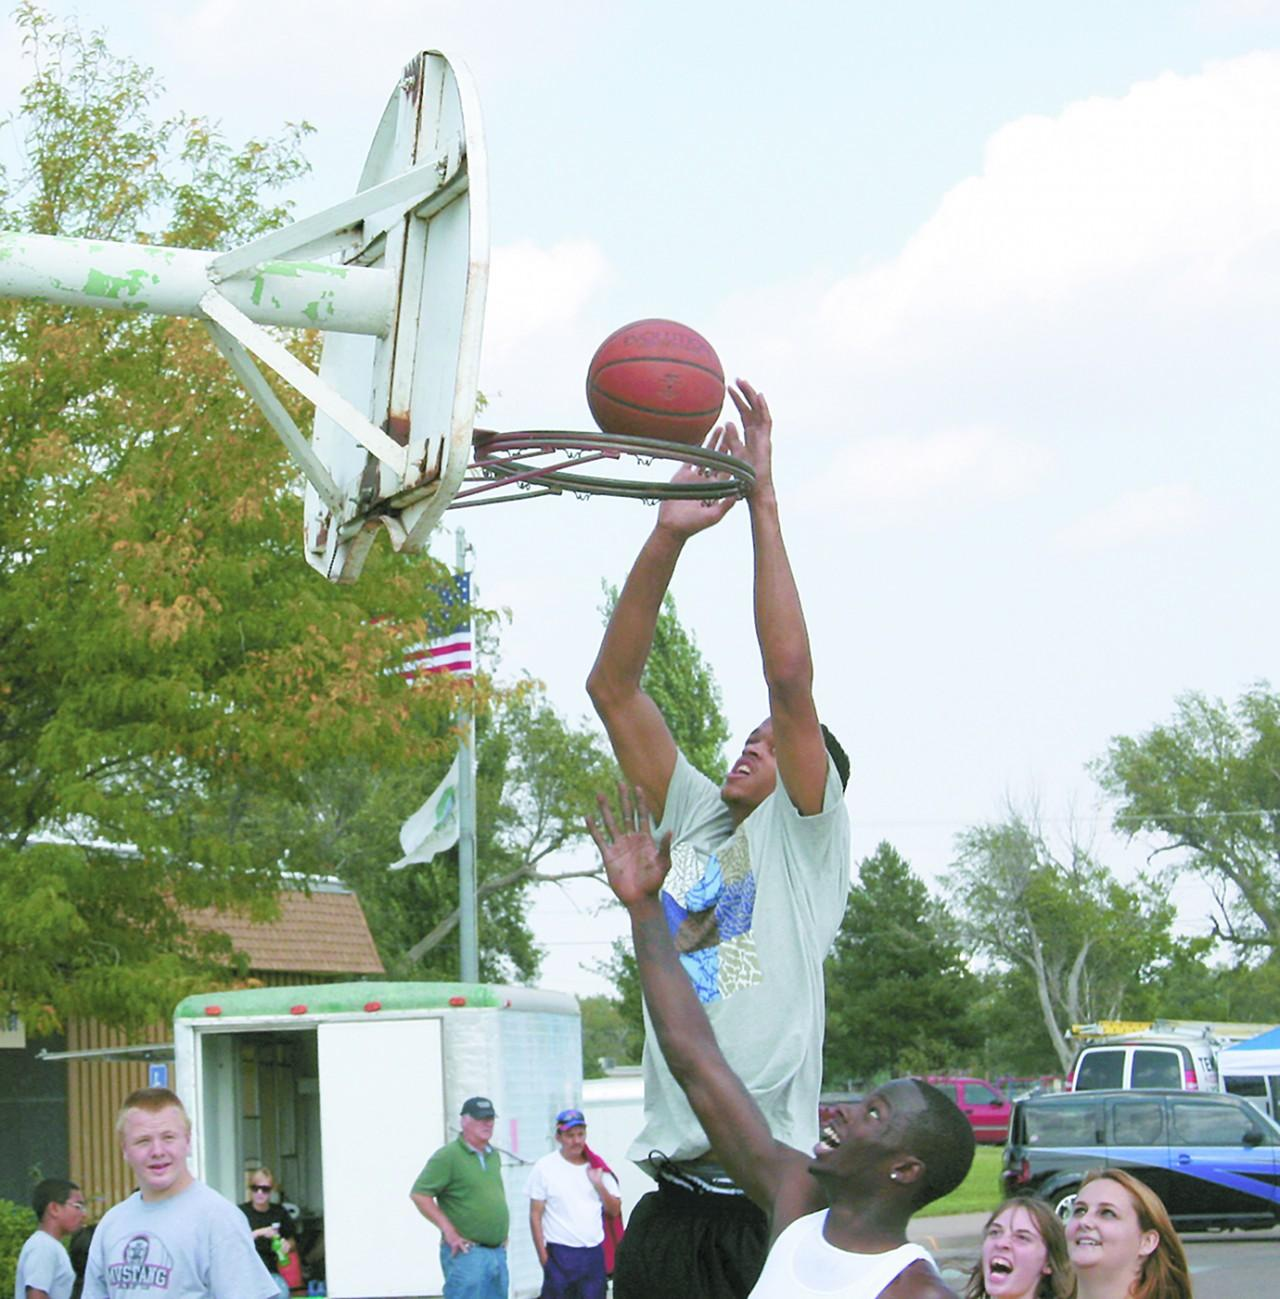 Crusader photo/ Will Rector Jon Tassin slam dunks a basketball during the Play a Saint event at the Chili Cookoff.